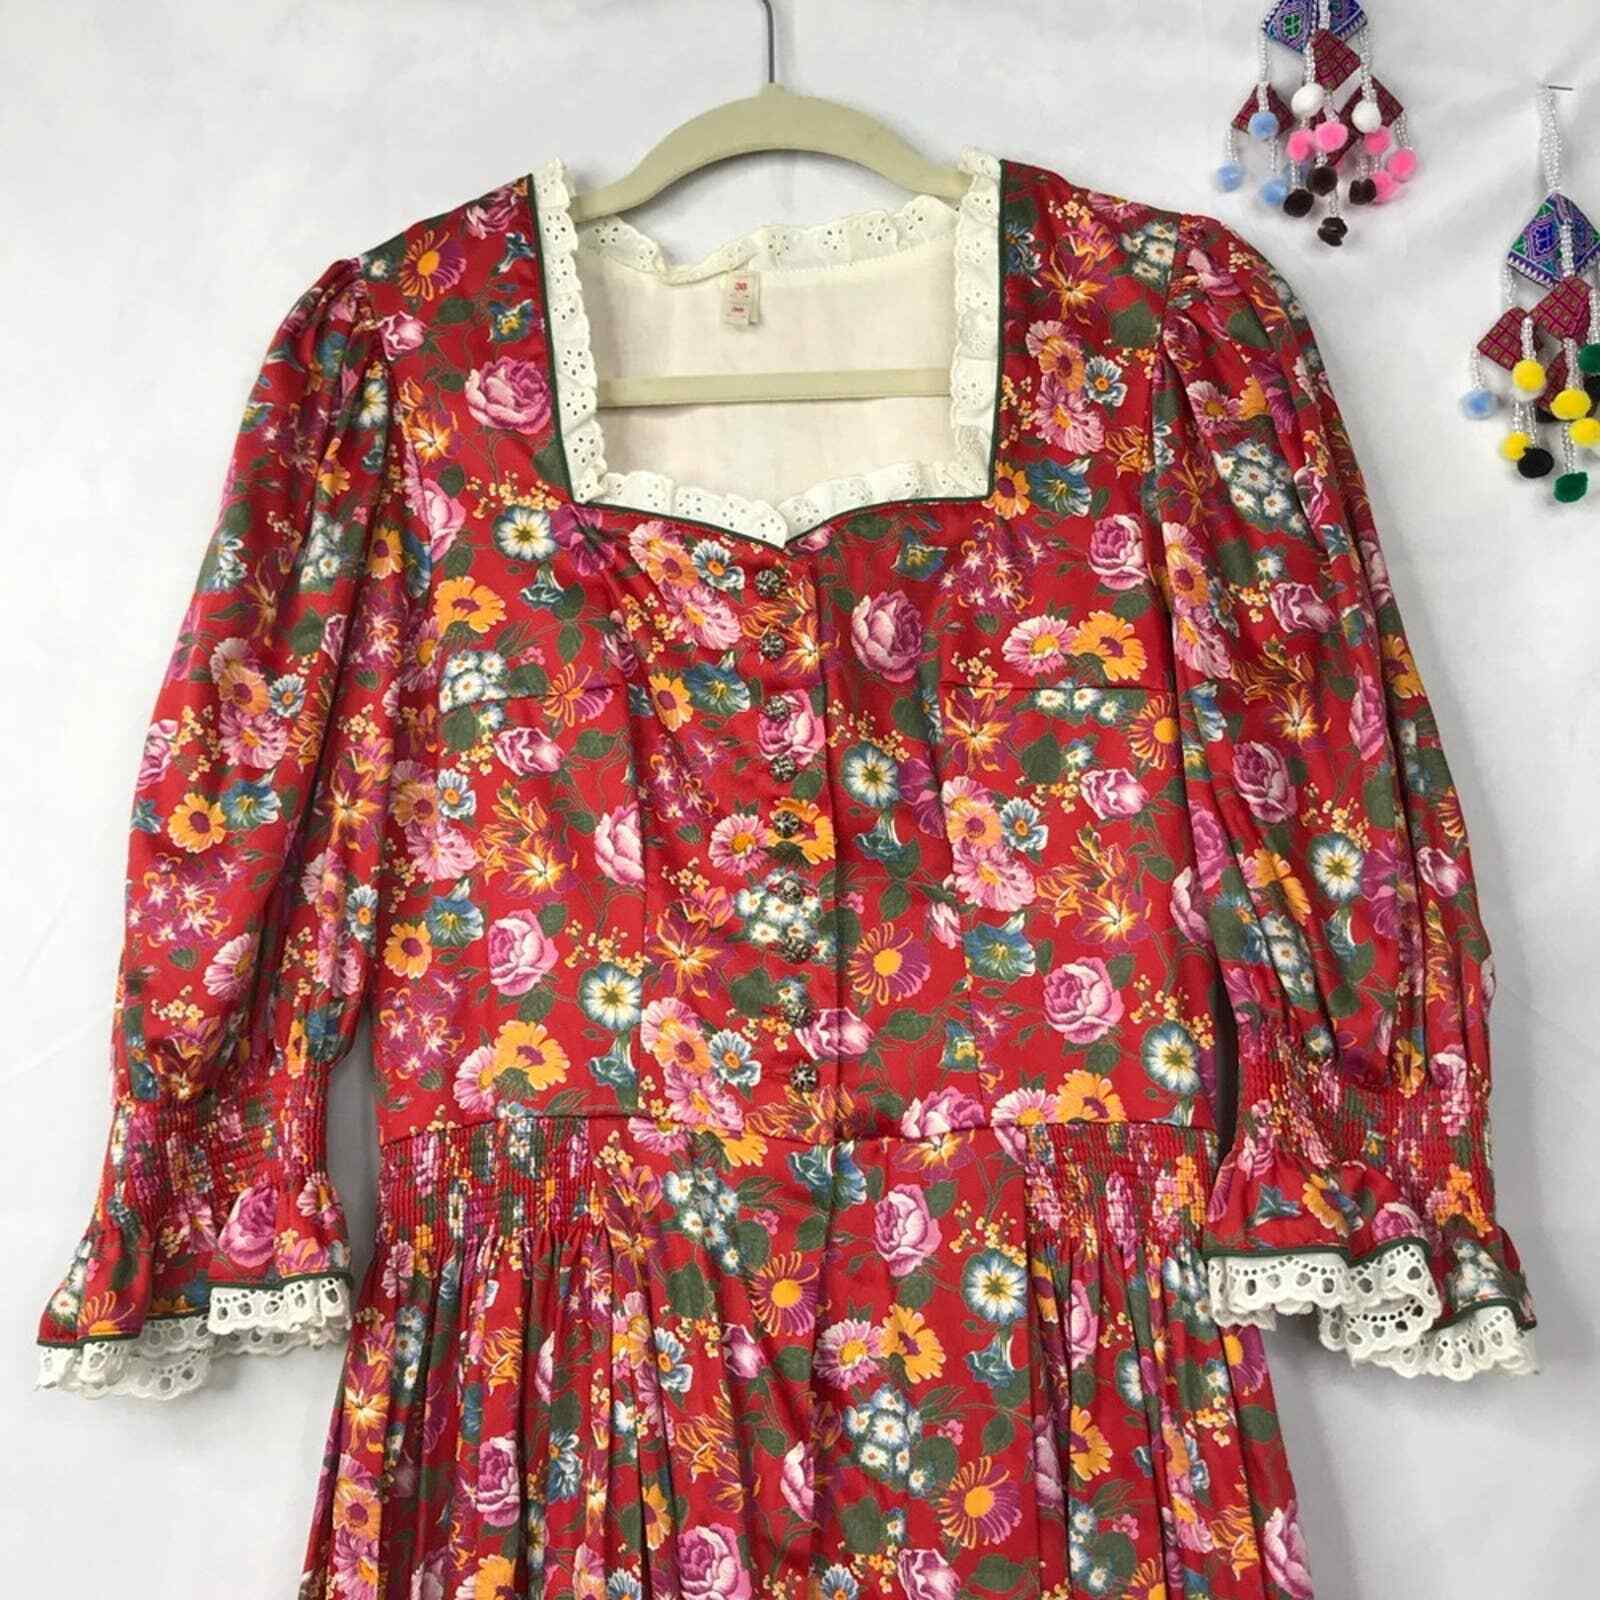 60s Style cottagecore floral prairie pleated dress - image 3